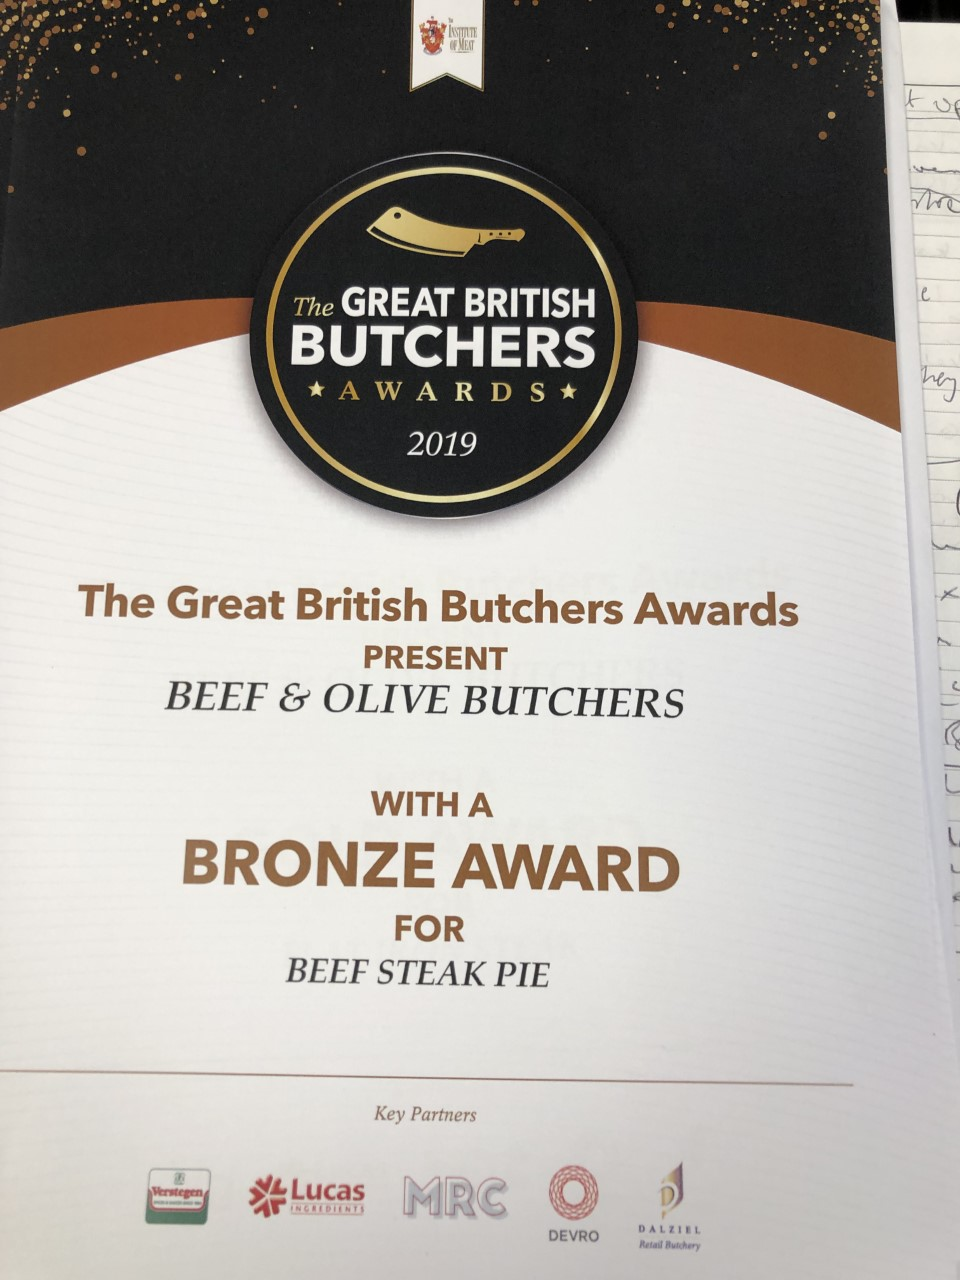 Great British Butchers Bronze Award for Beef Steak Pie